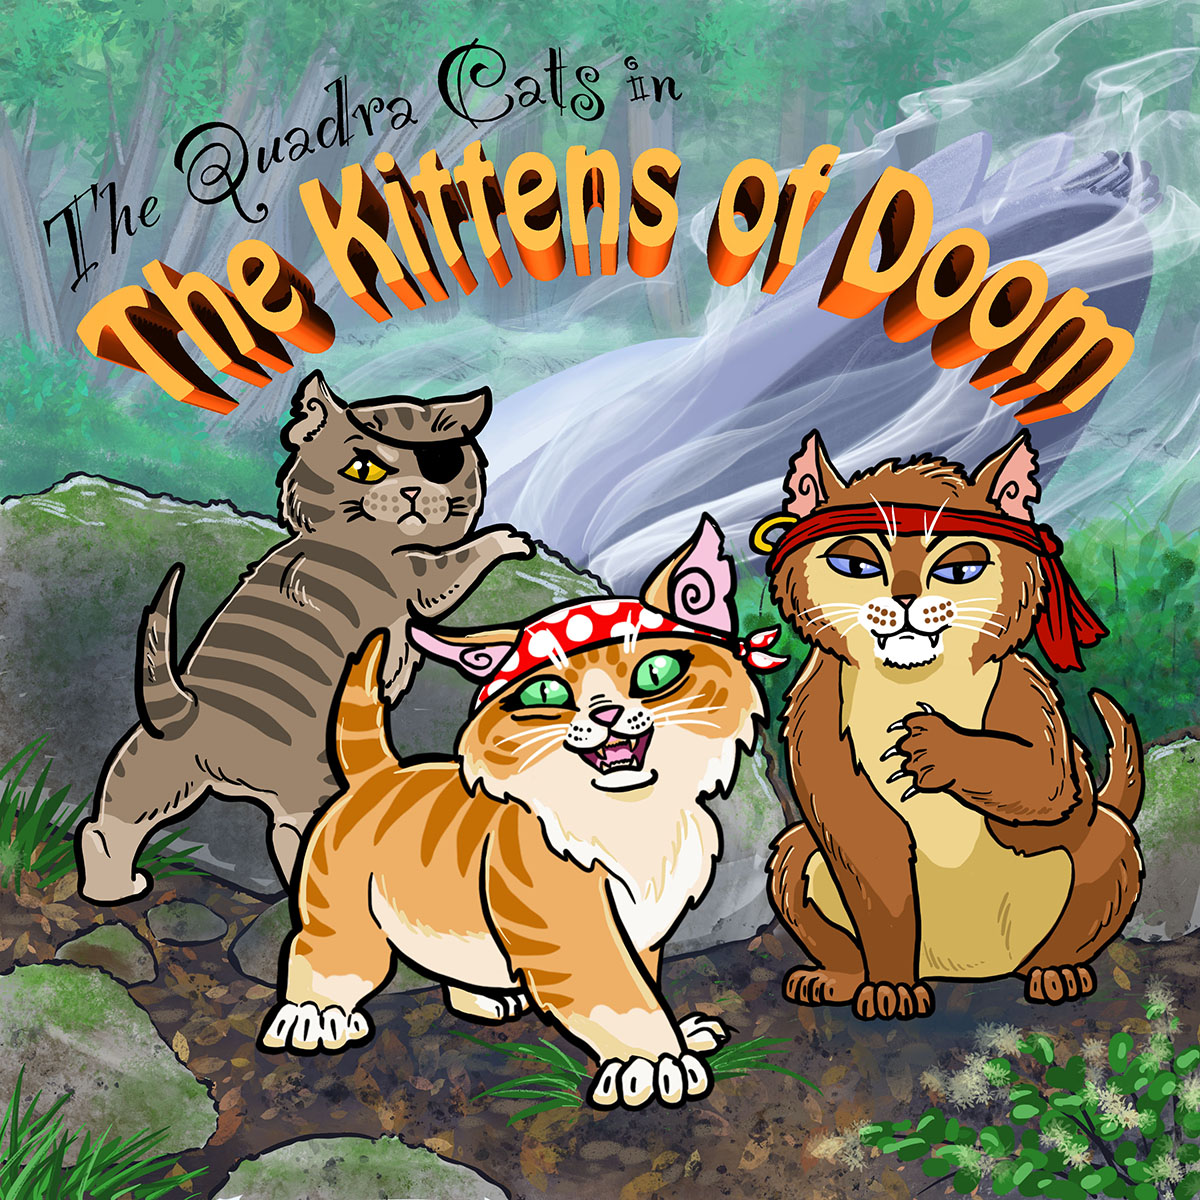 The Kittens of Doom!